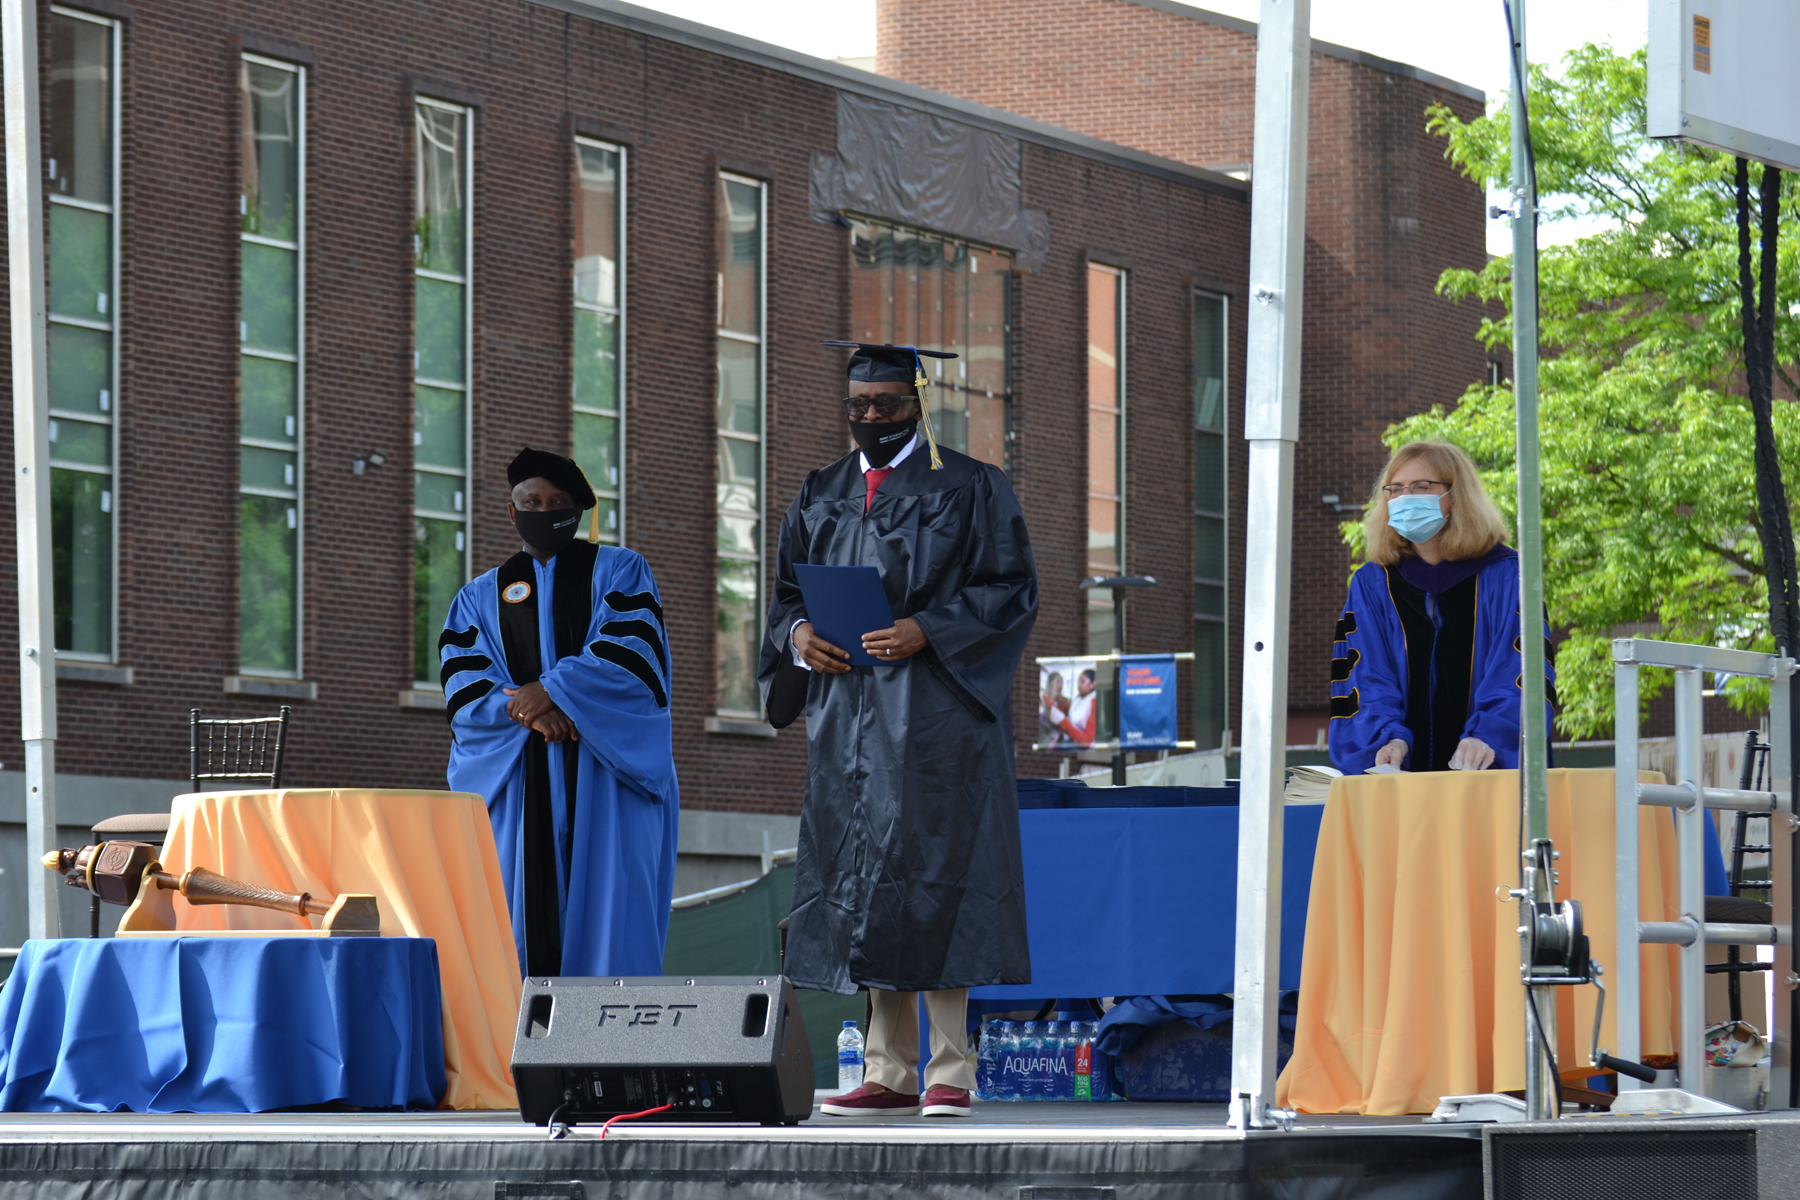 Graduate Olujide Adesina holding up diploma on stage